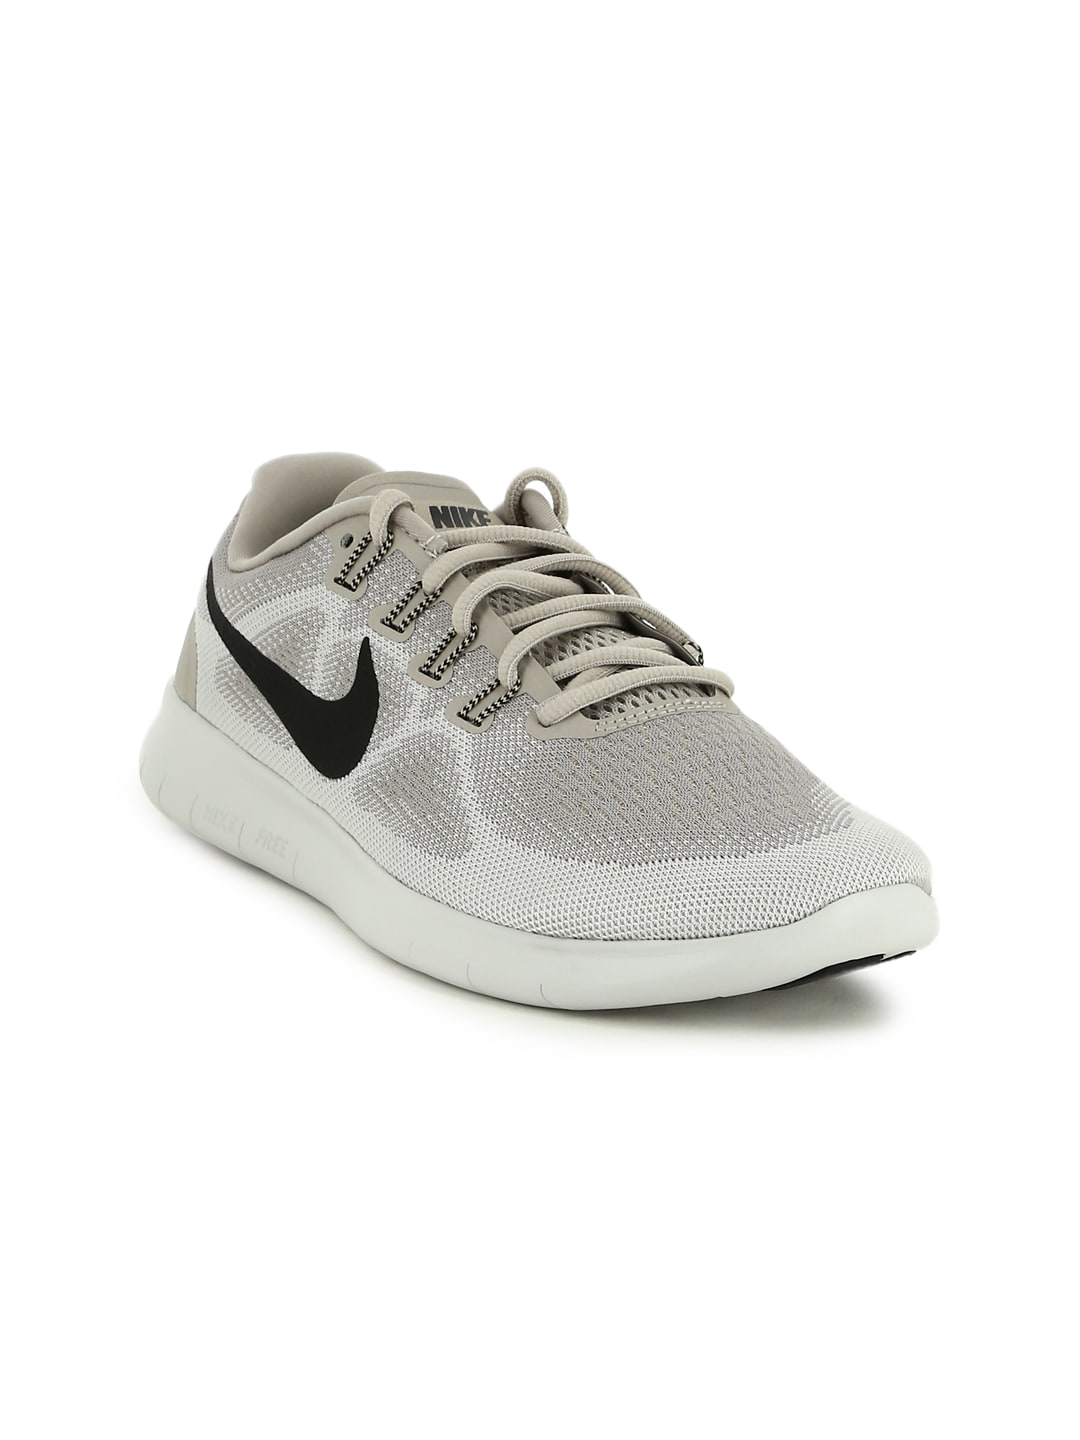 3544d294ec1 Nike Shoes - Buy Nike Shoes for Men   Women Online